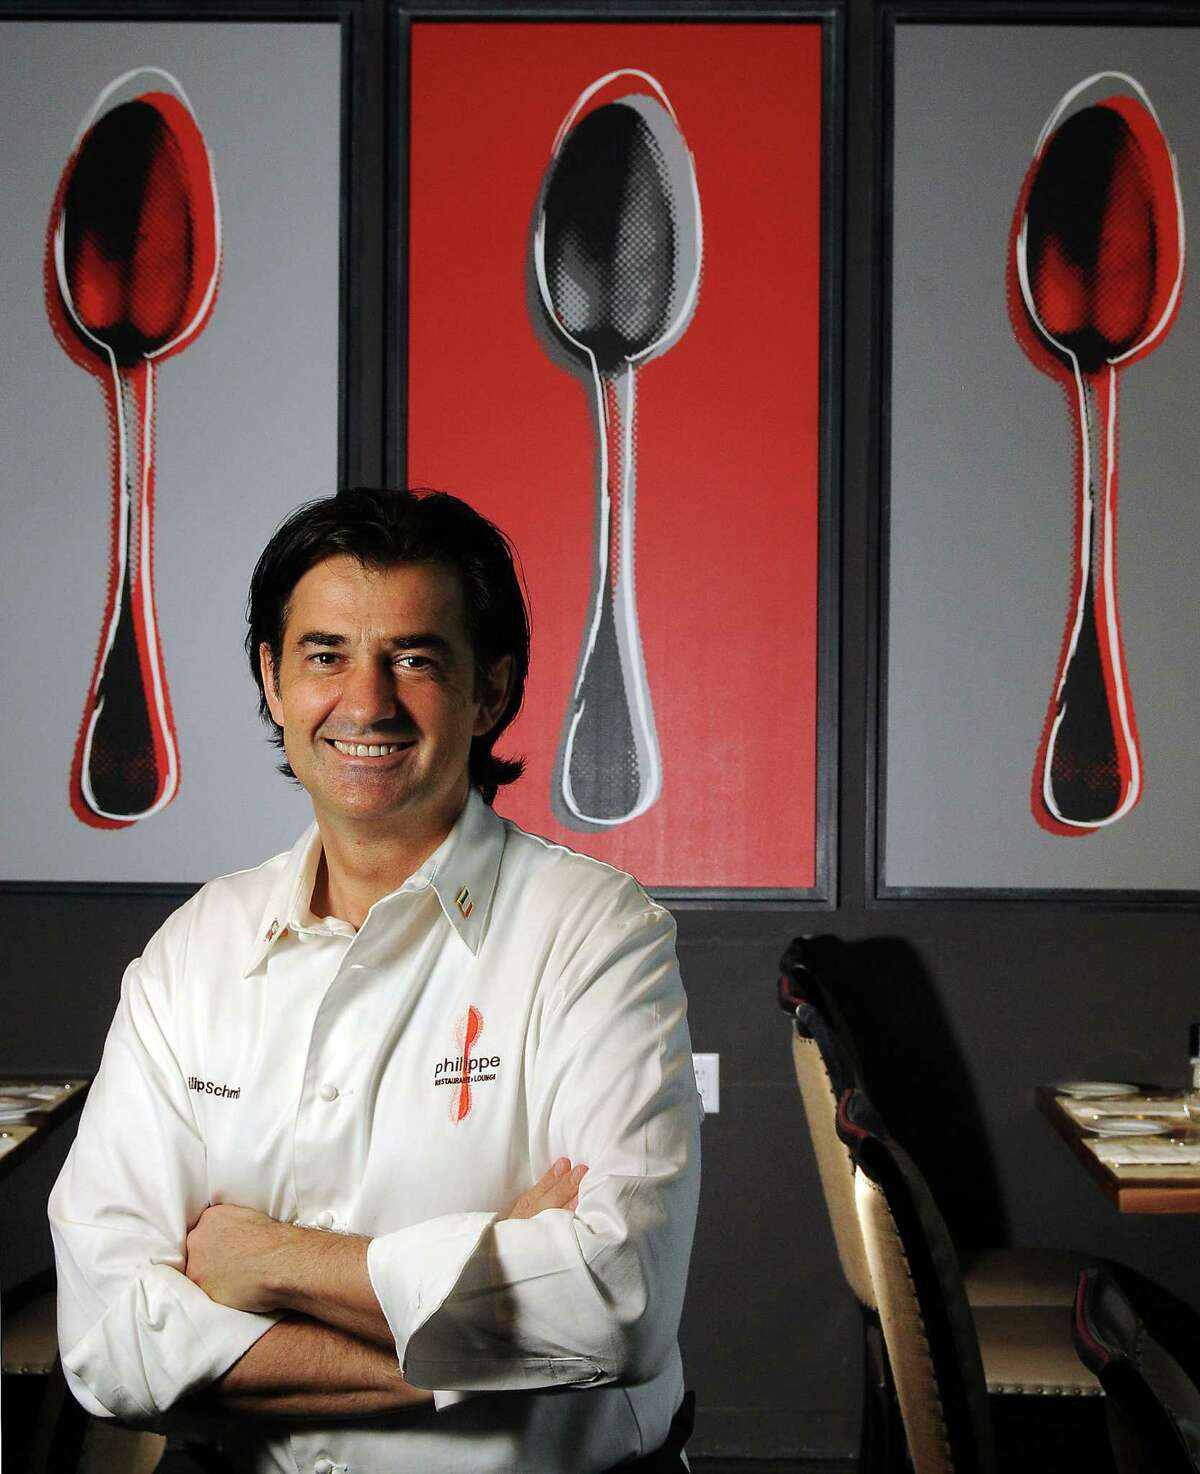 Owner/chef Philippe Schmit is leaving Philippe Restaurant & Lounge to